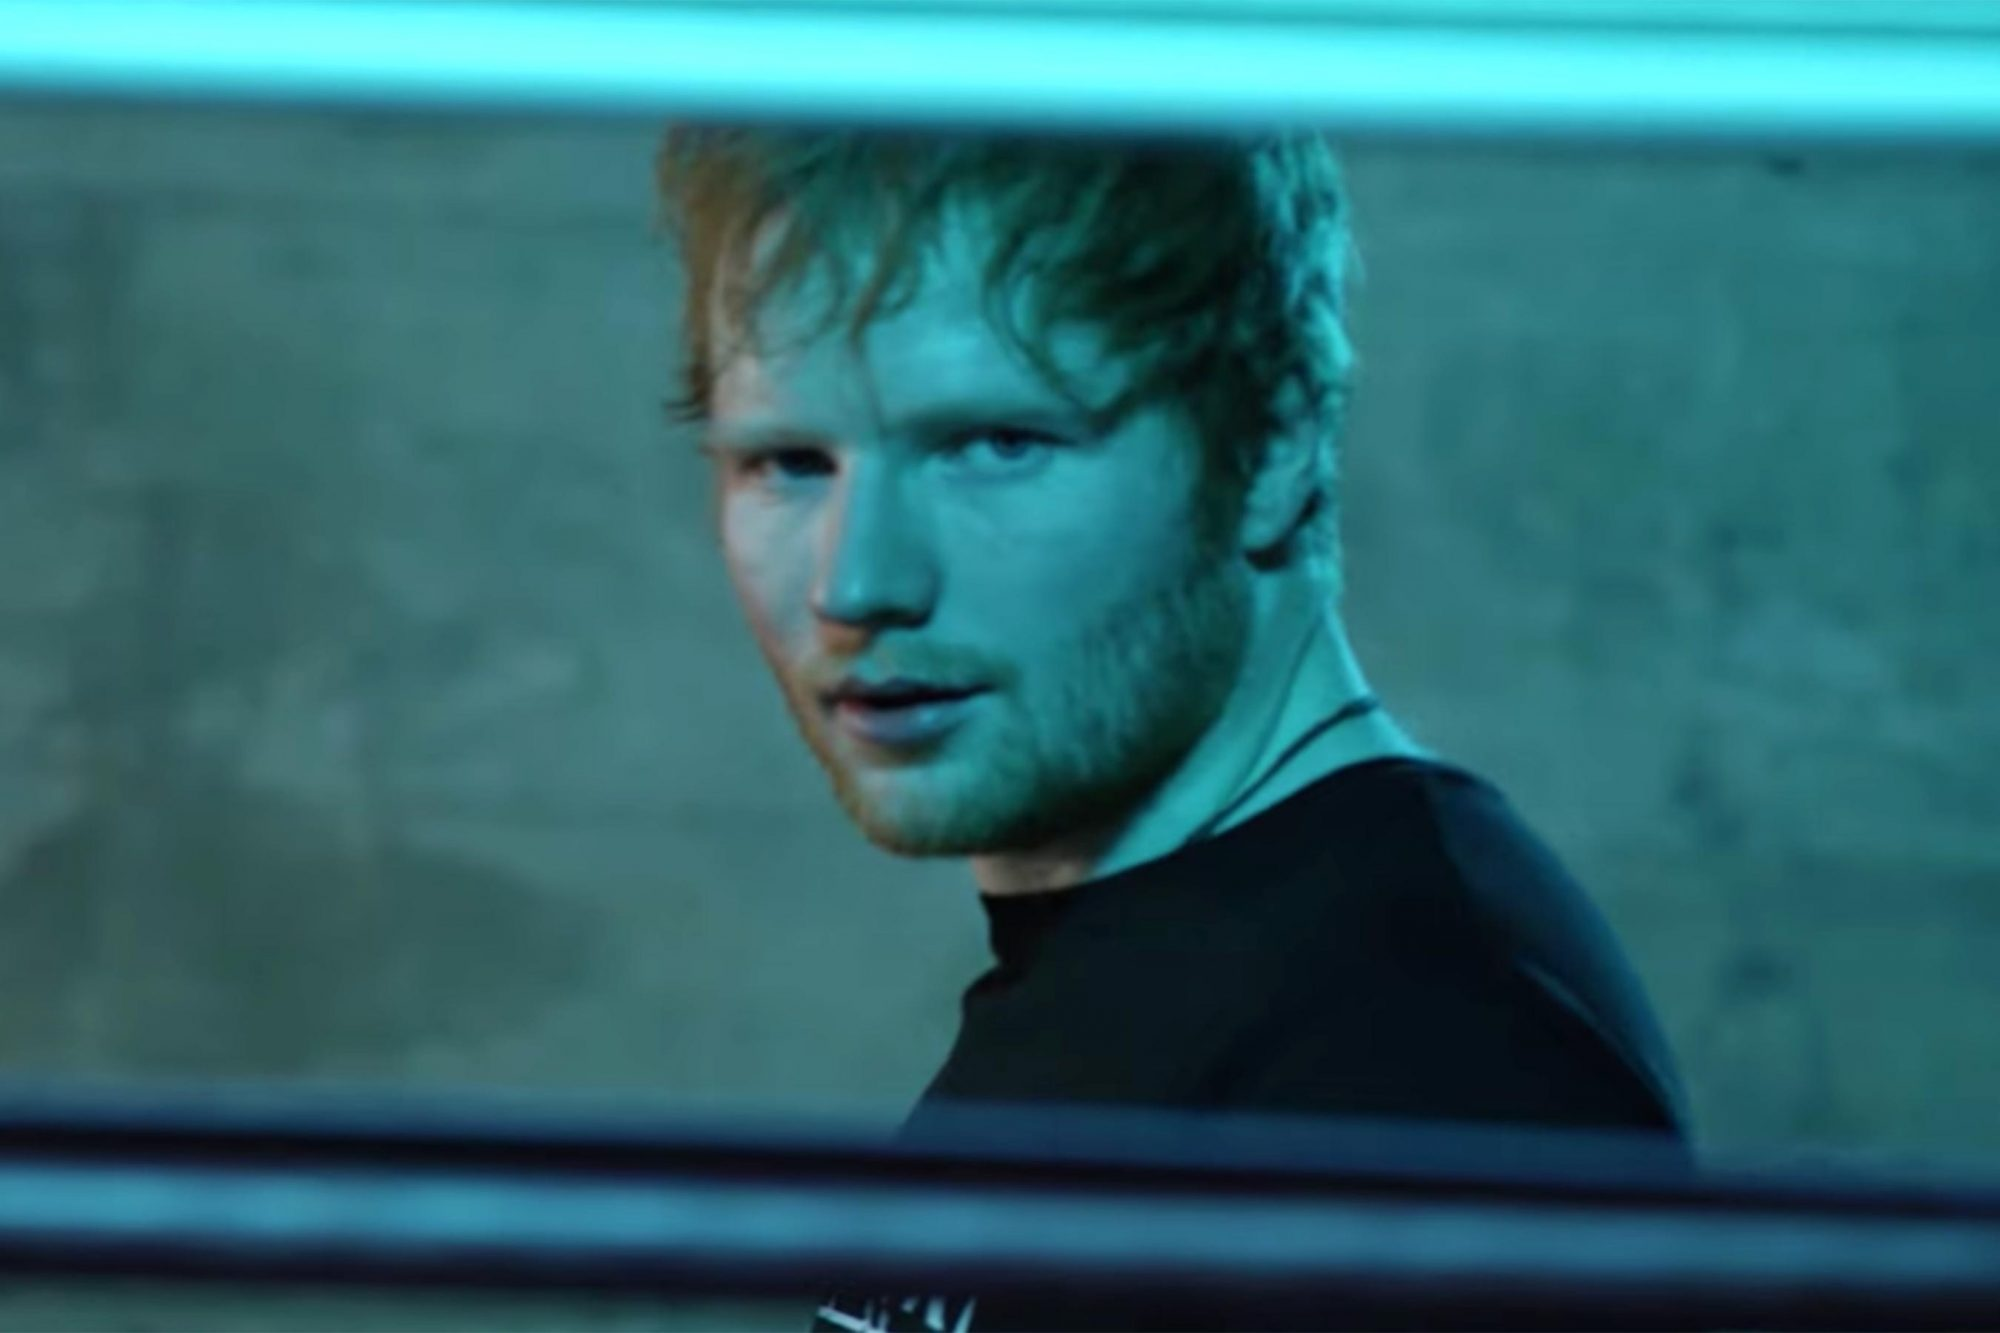 Ed Sheeran - Shape of You [Official Video] (screen grab) CR: Ed Sheeran/YouTube